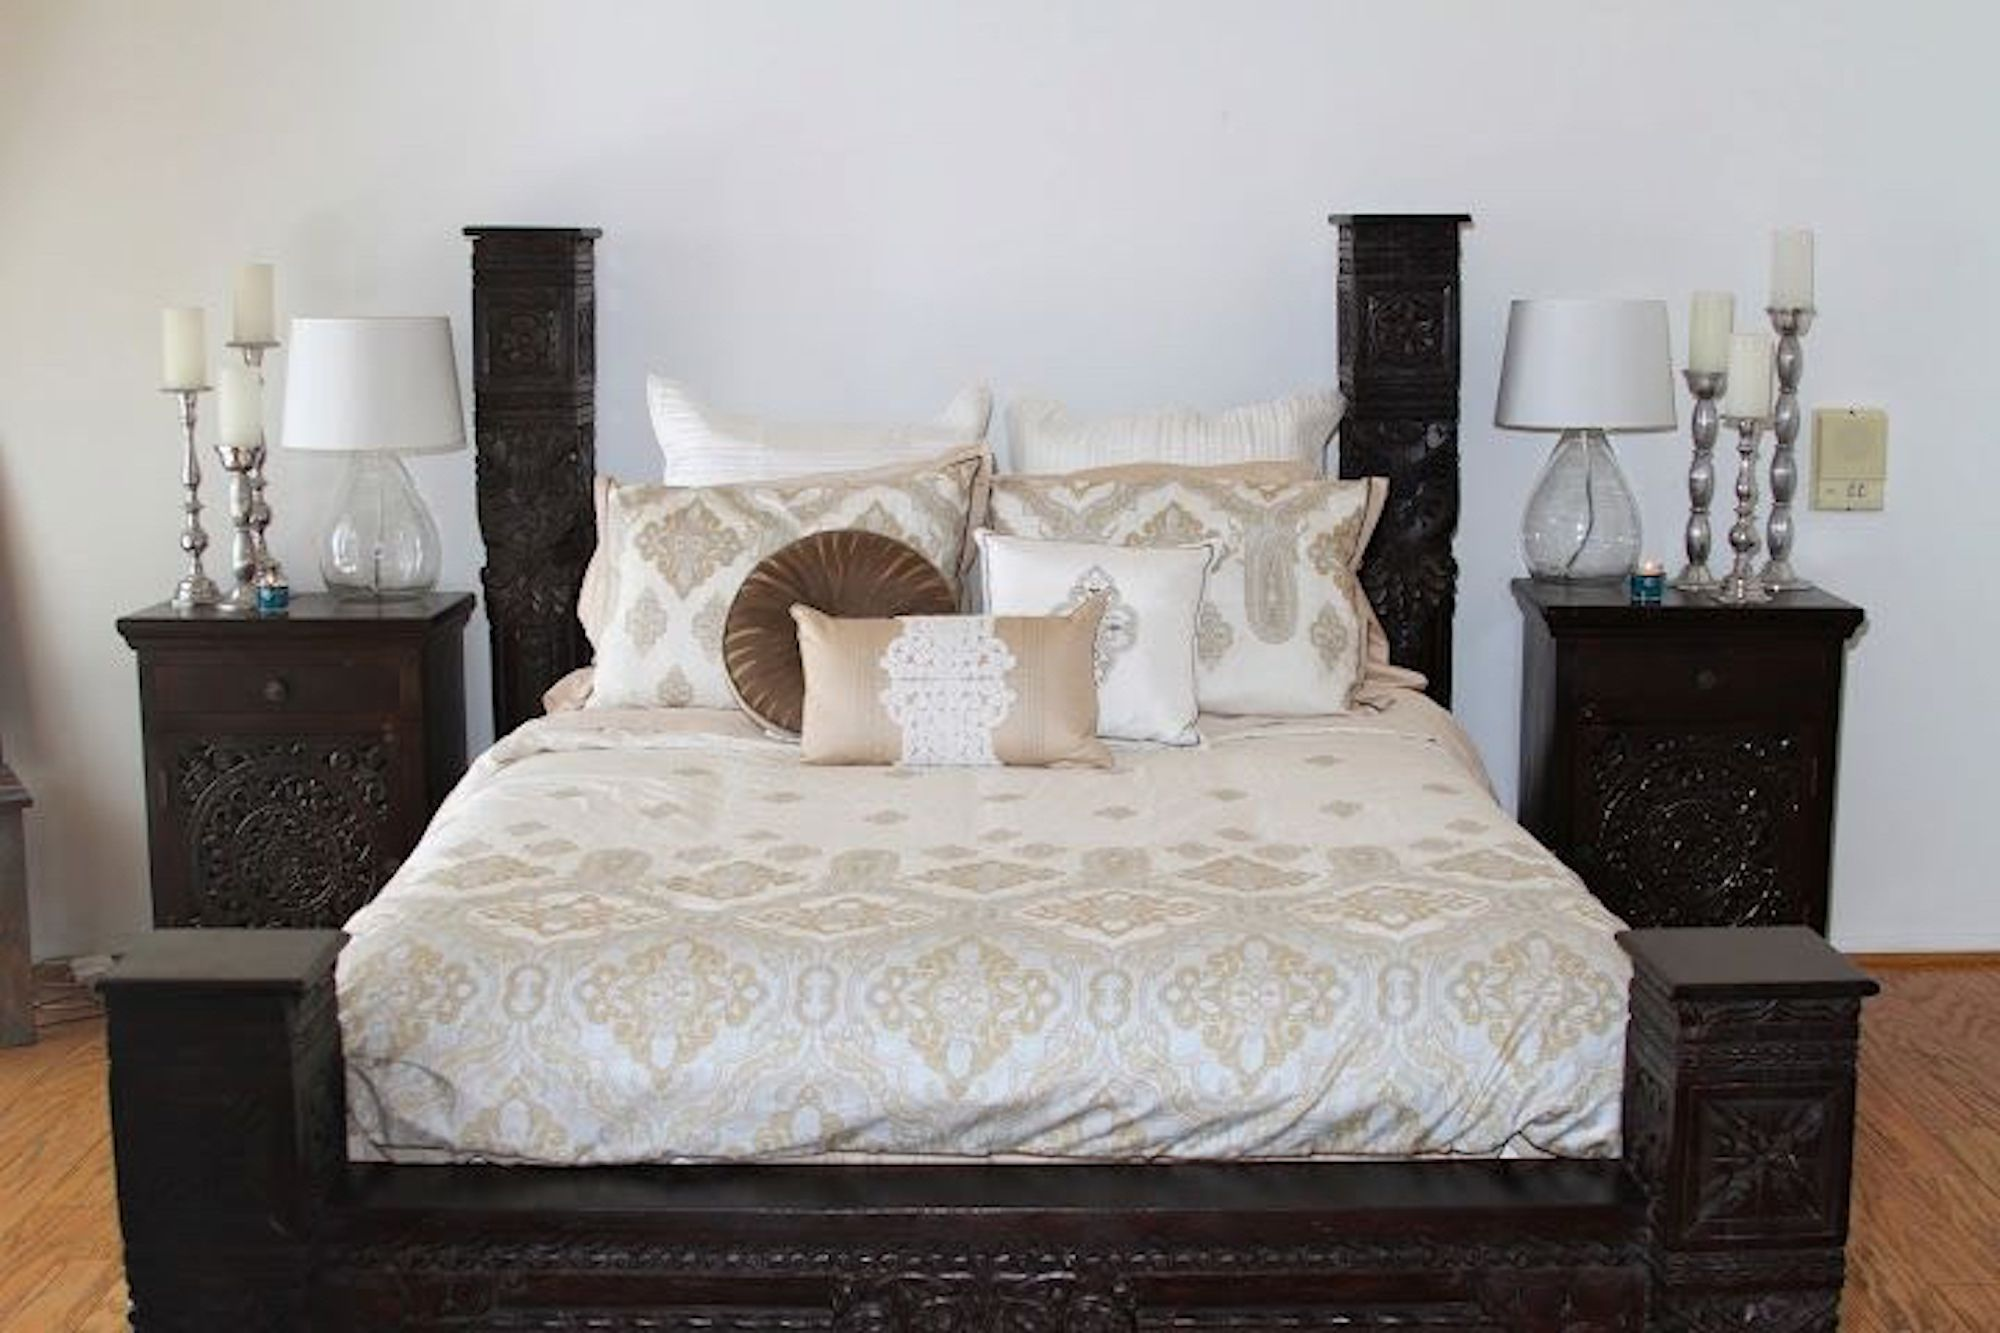 Low Pillar Bed Indian Bedding Bed Handcrafted Bed